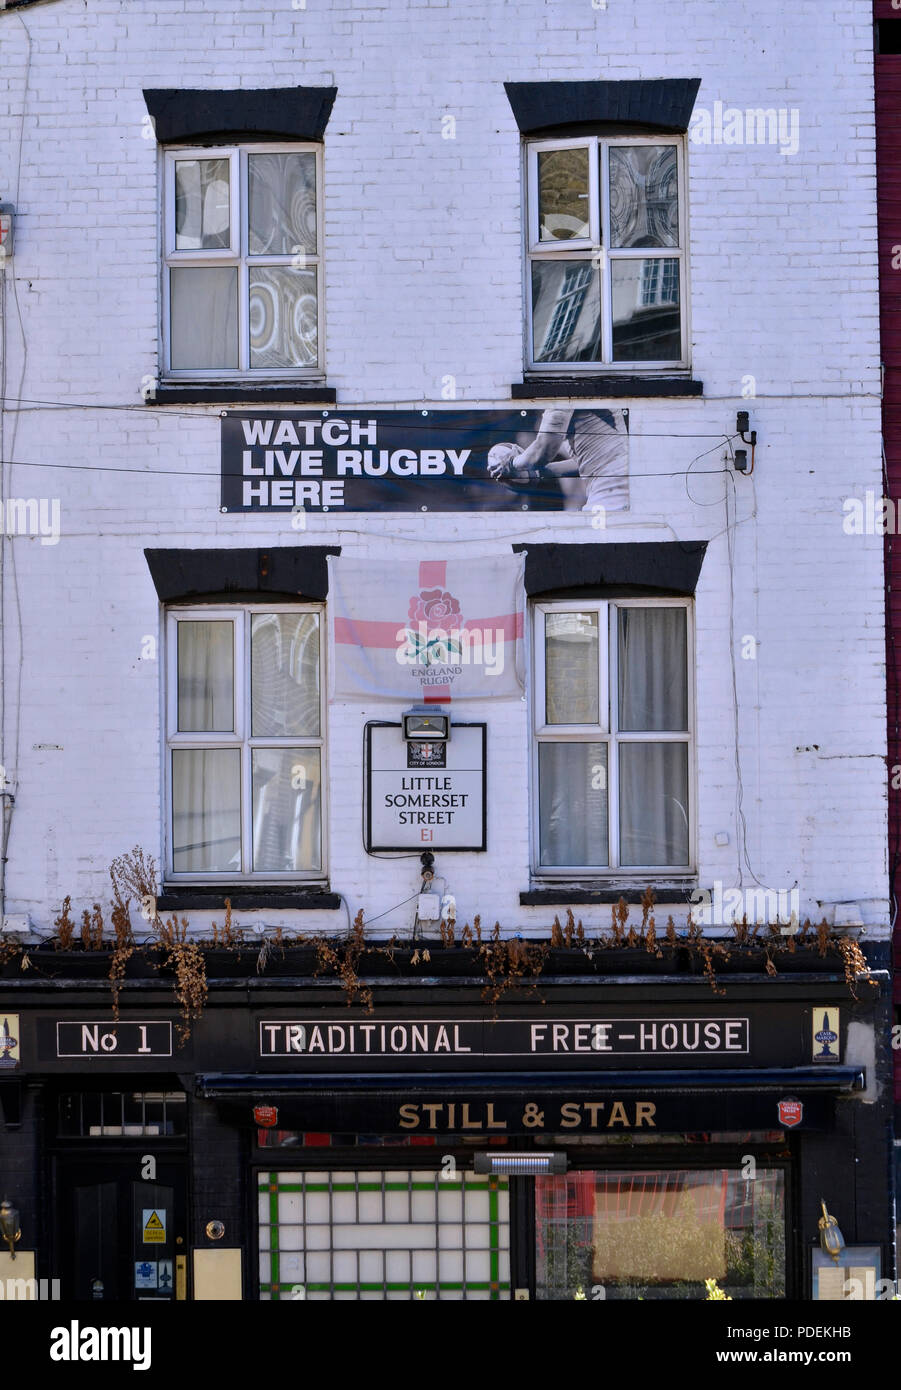 The Still and Star public house in Aldgate, east London - Stock Image